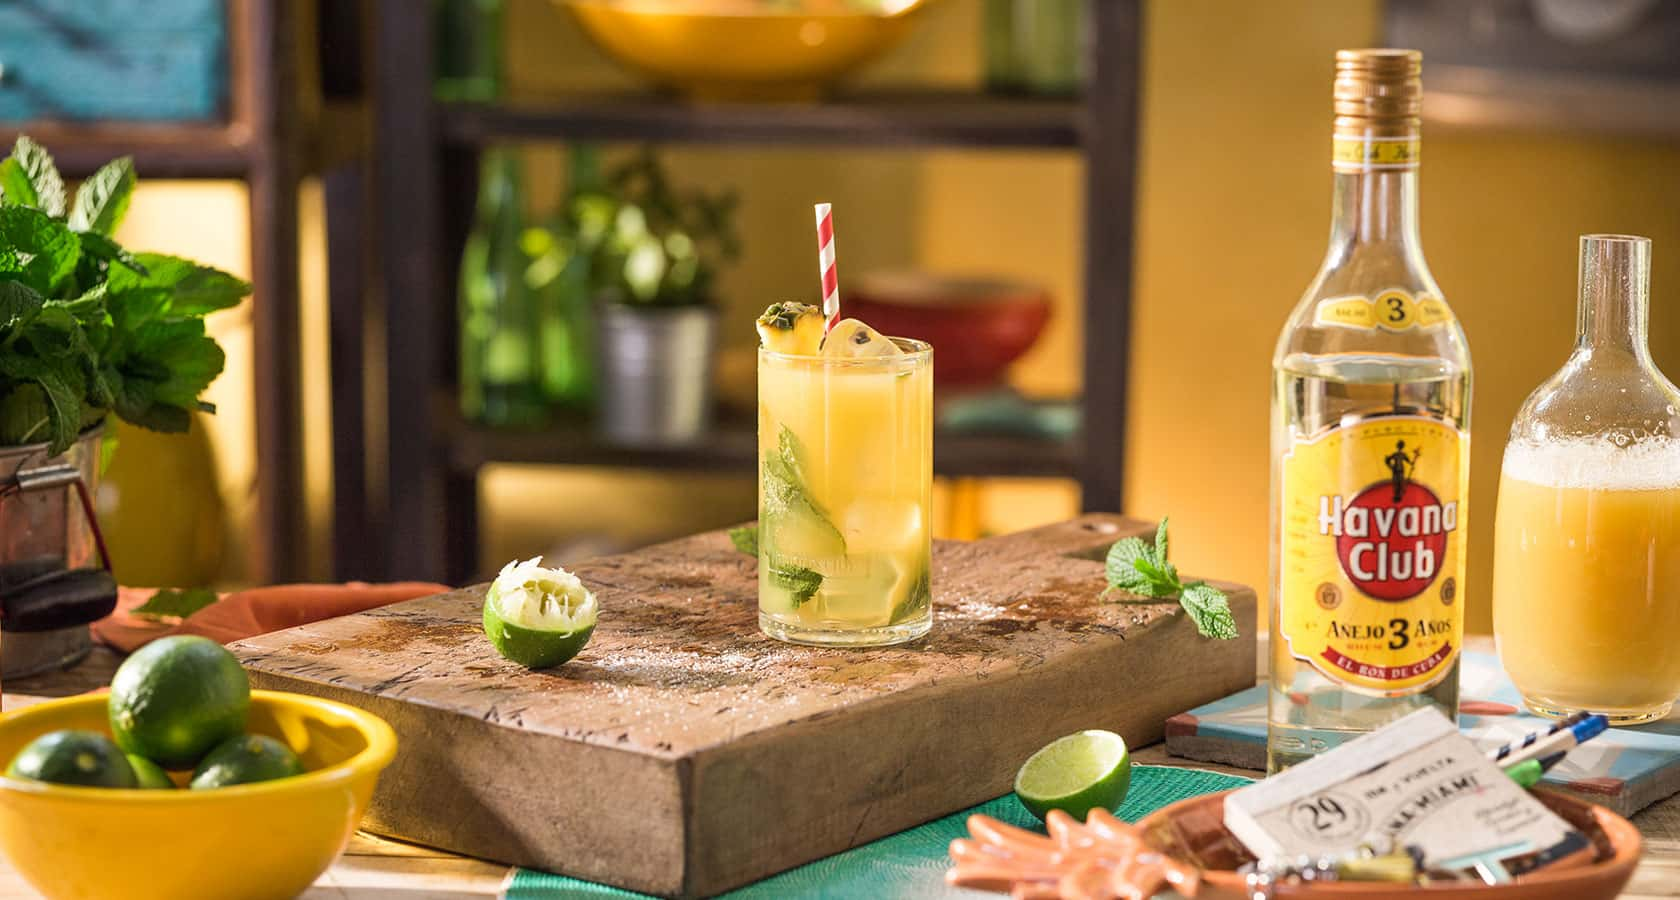 Mojito pineapple recipe rum cocktails havana club for Cocktail havana club